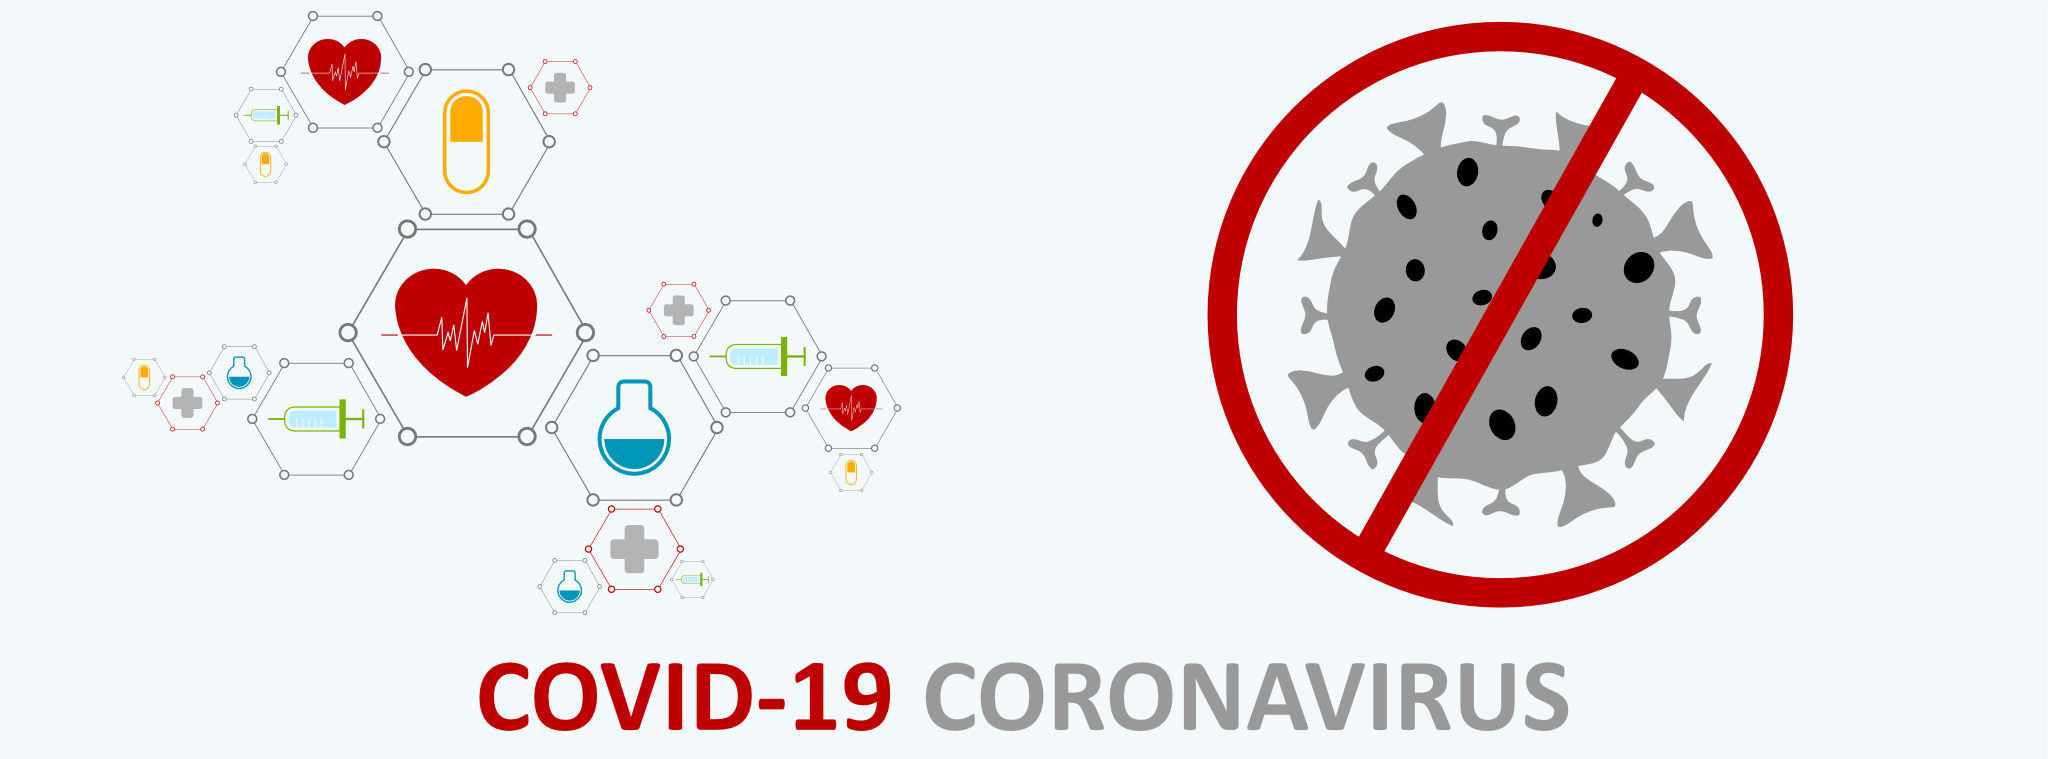 COVID-19 pandemic how did it start coronavirus banner medical molecule